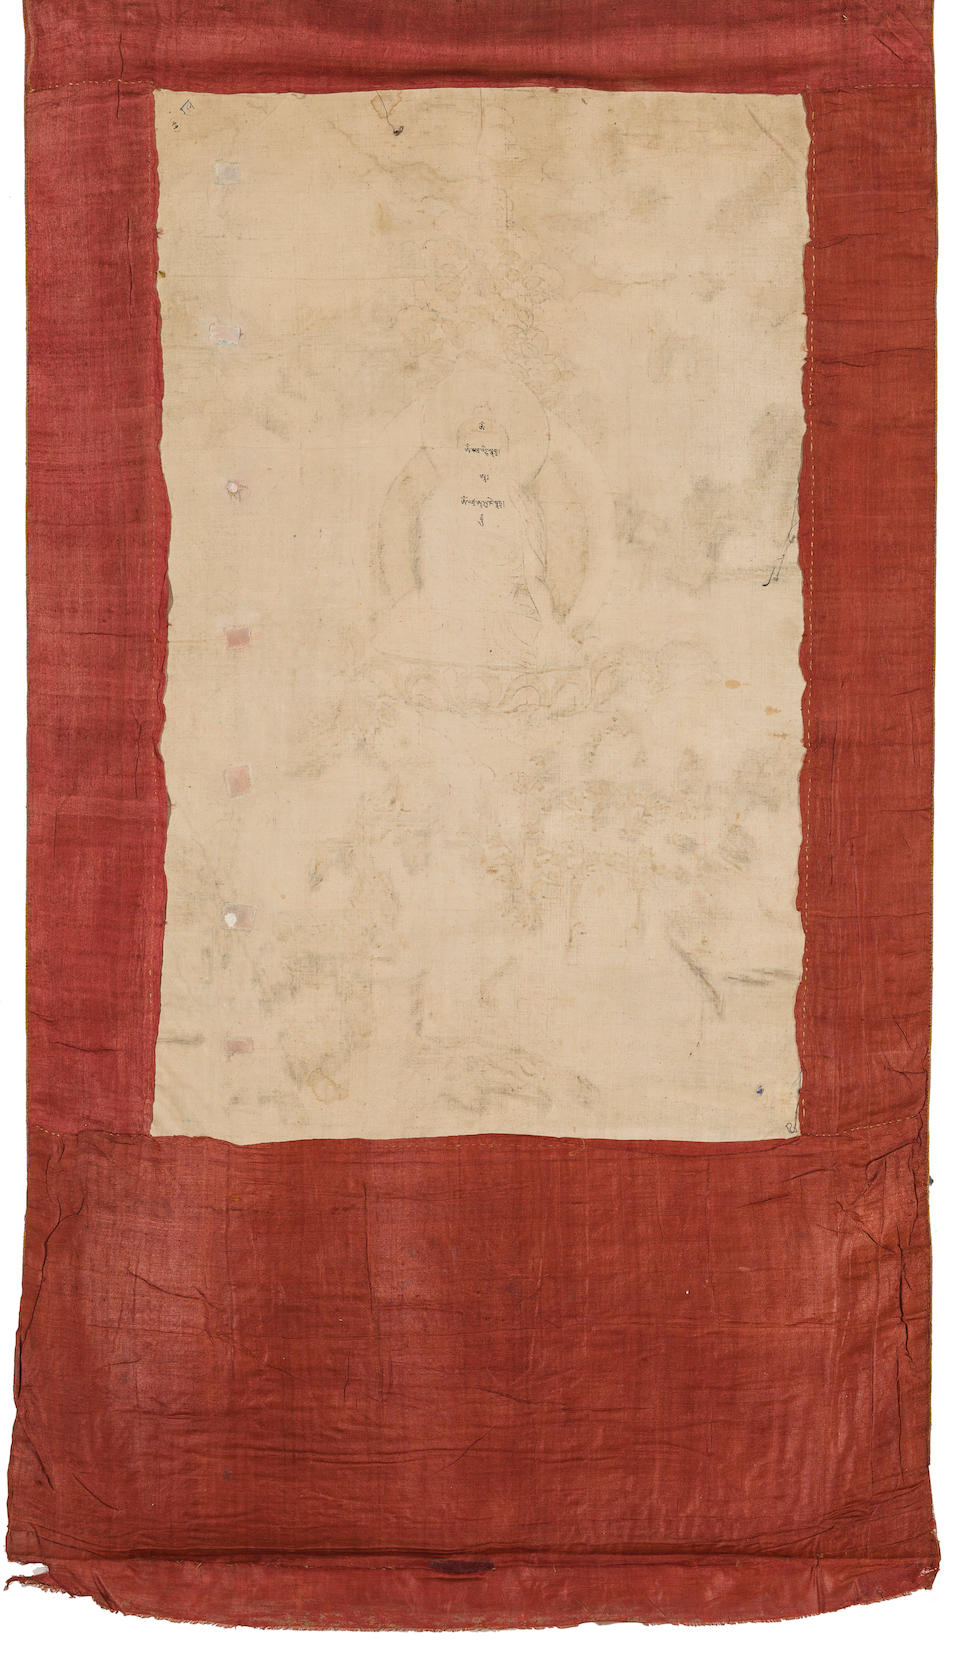 A thangka from an Avadanakalpalata set Central Tibet, 18th/19th century